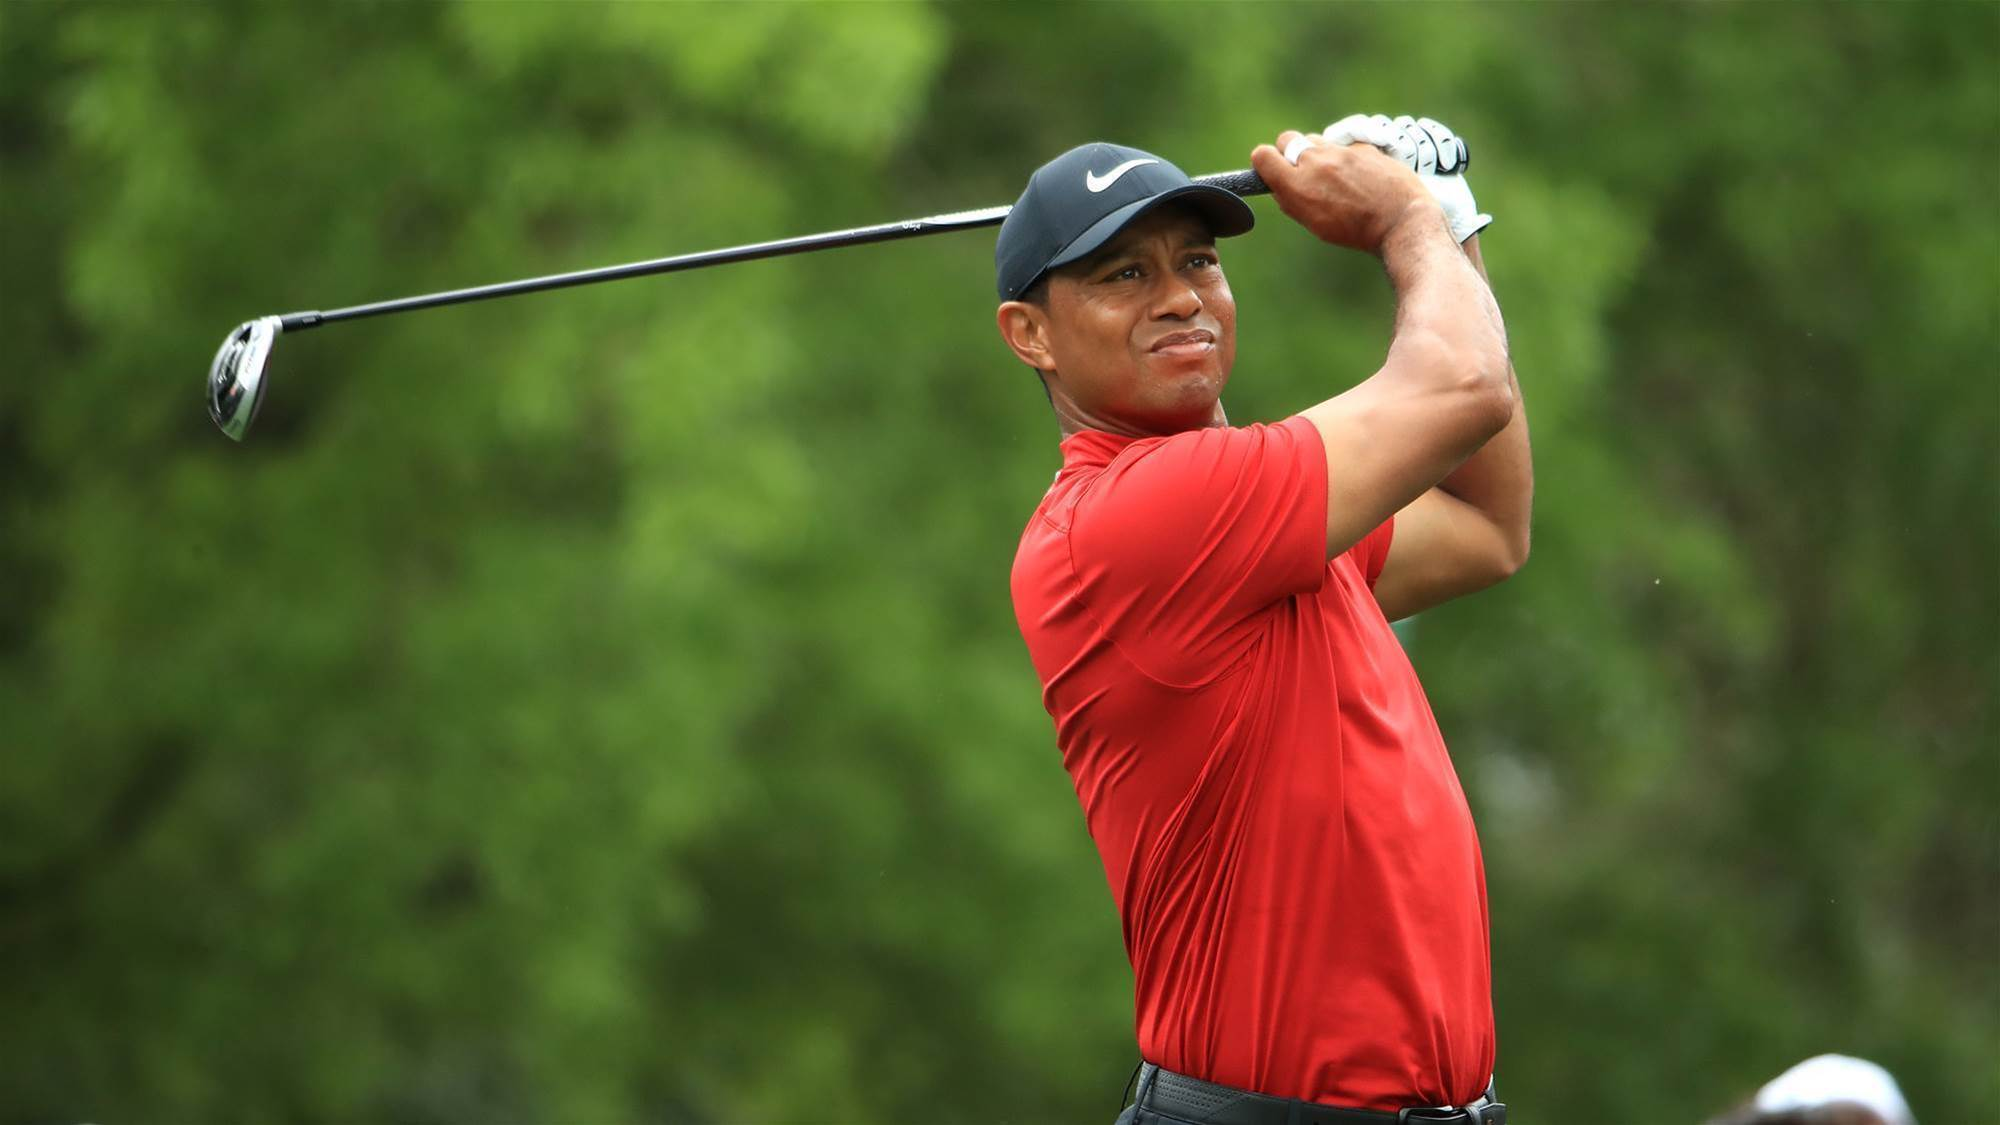 Woods confirmed for new PGA Tour event in Japan